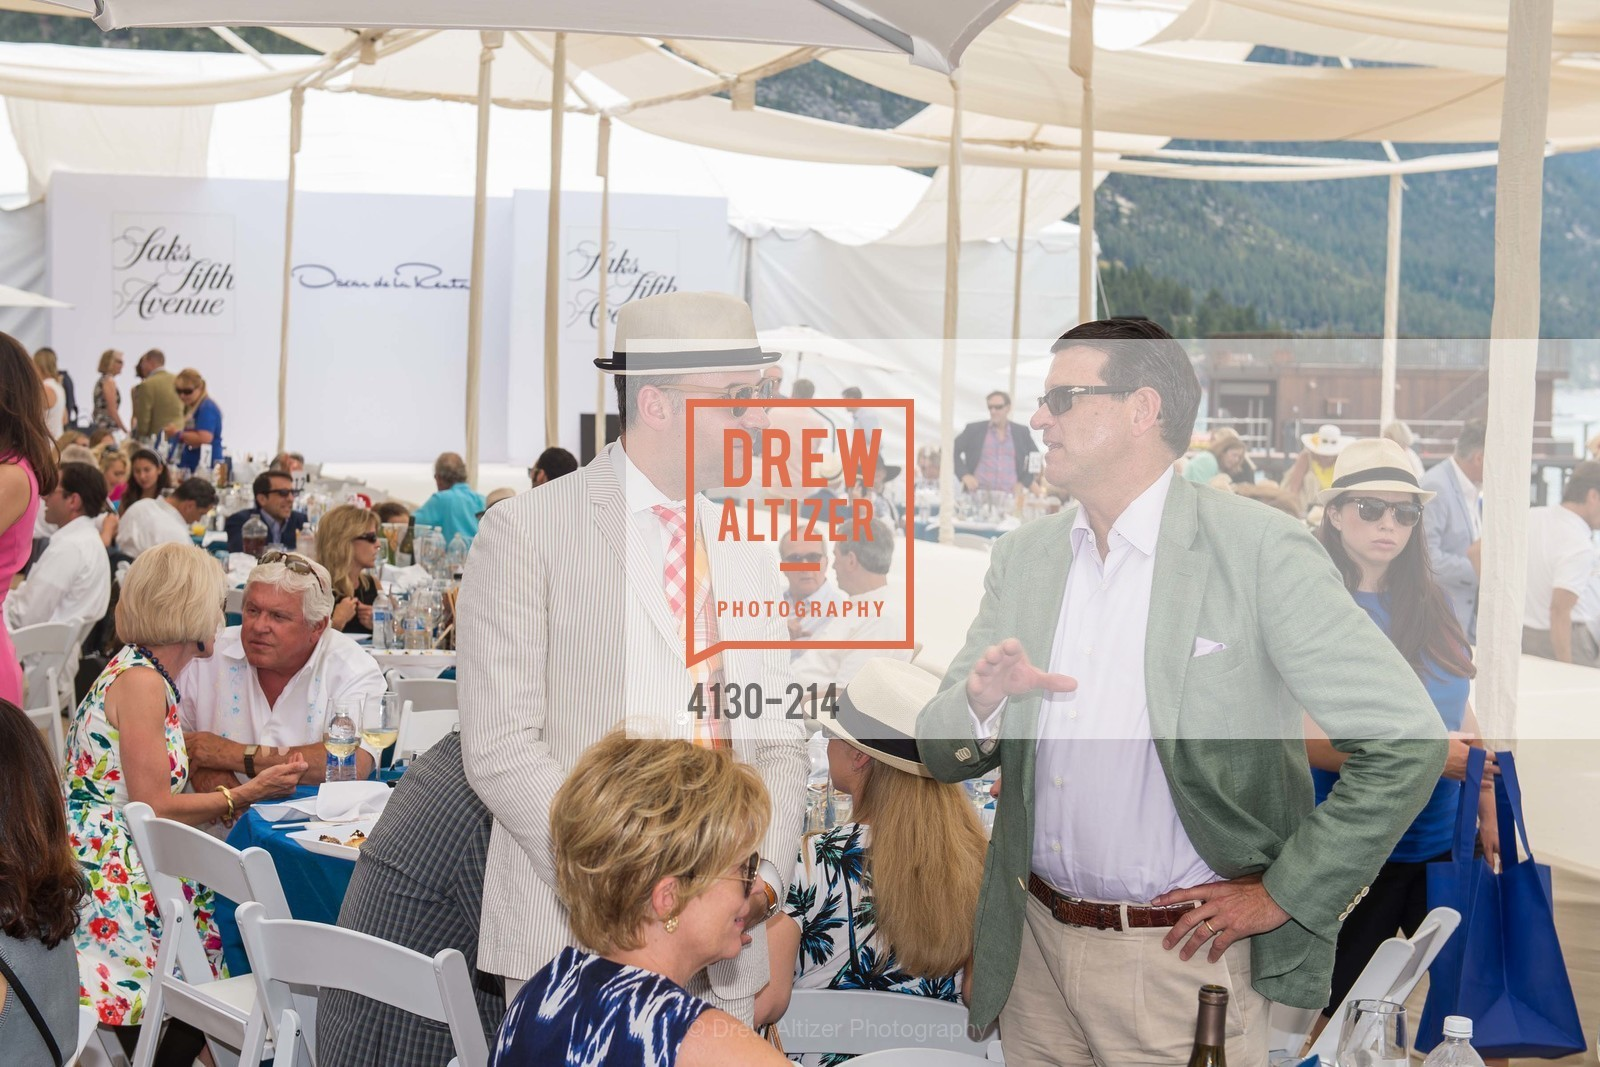 Robert Arnold-Kraft, Edward Poole, Saks Fifth Avenue and The League to Save Lake Tahoe Present Fashion on the Lake, Private Residence, August 1st, 2015,Drew Altizer, Drew Altizer Photography, full-service event agency, private events, San Francisco photographer, photographer California